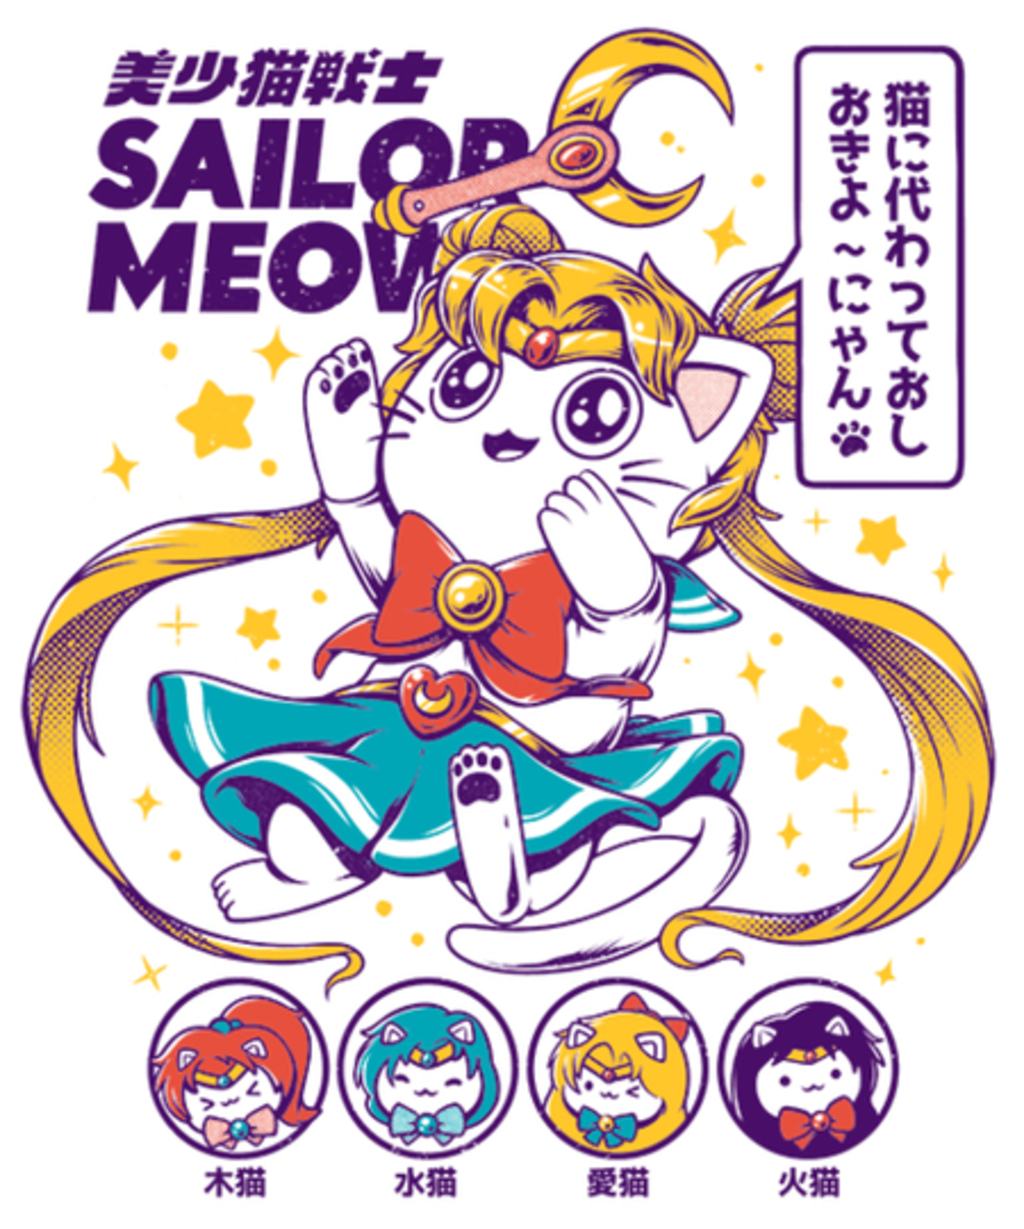 Qwertee: Sailor Meow